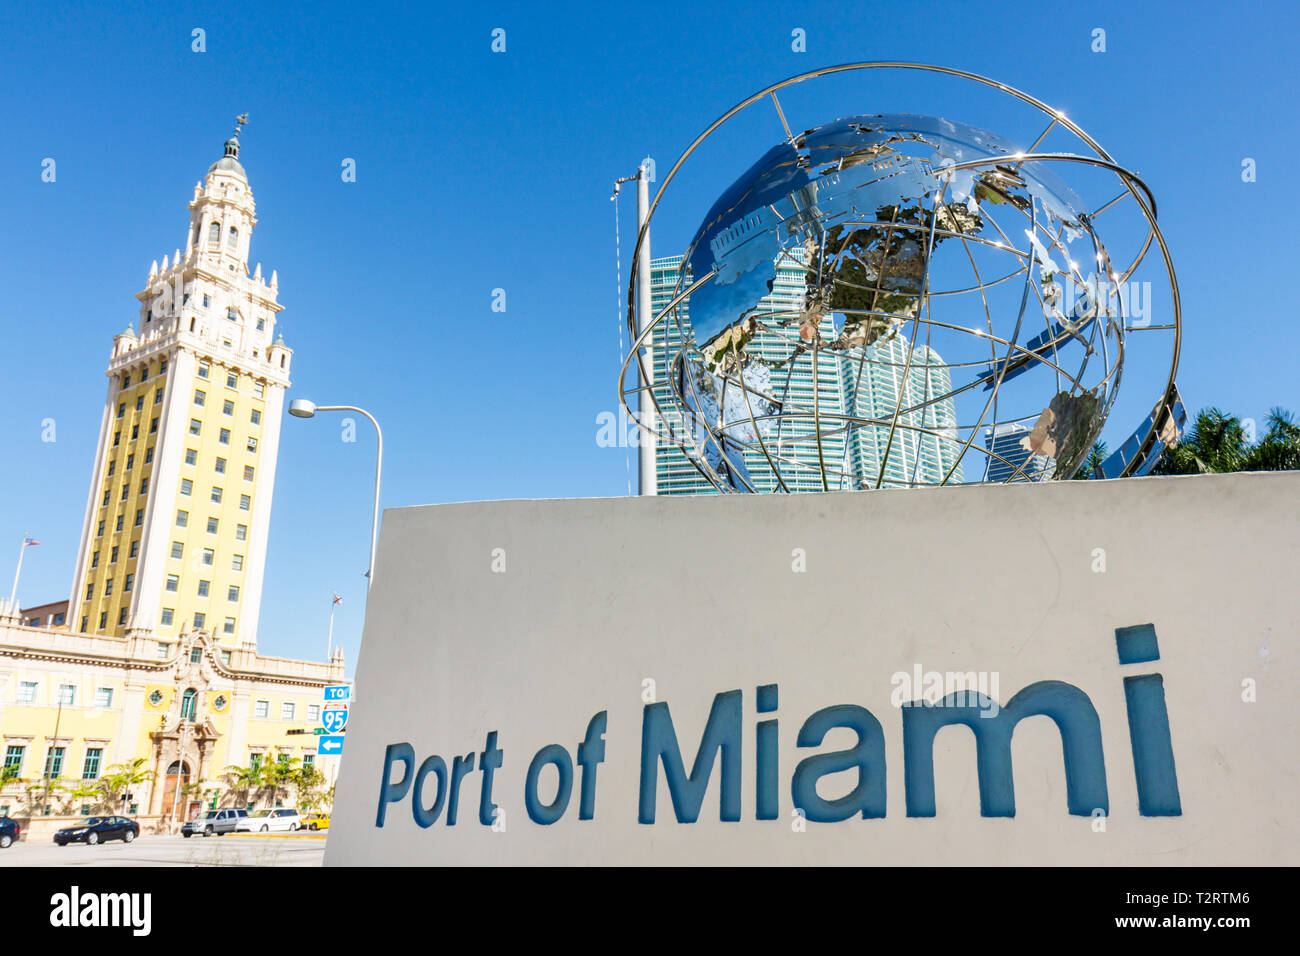 Miami Florida Biscayne Boulevard Freedom Tower architecture Spanish Renaissance Revival Schultze & Weaver built 1925 ornate hist - Stock Image